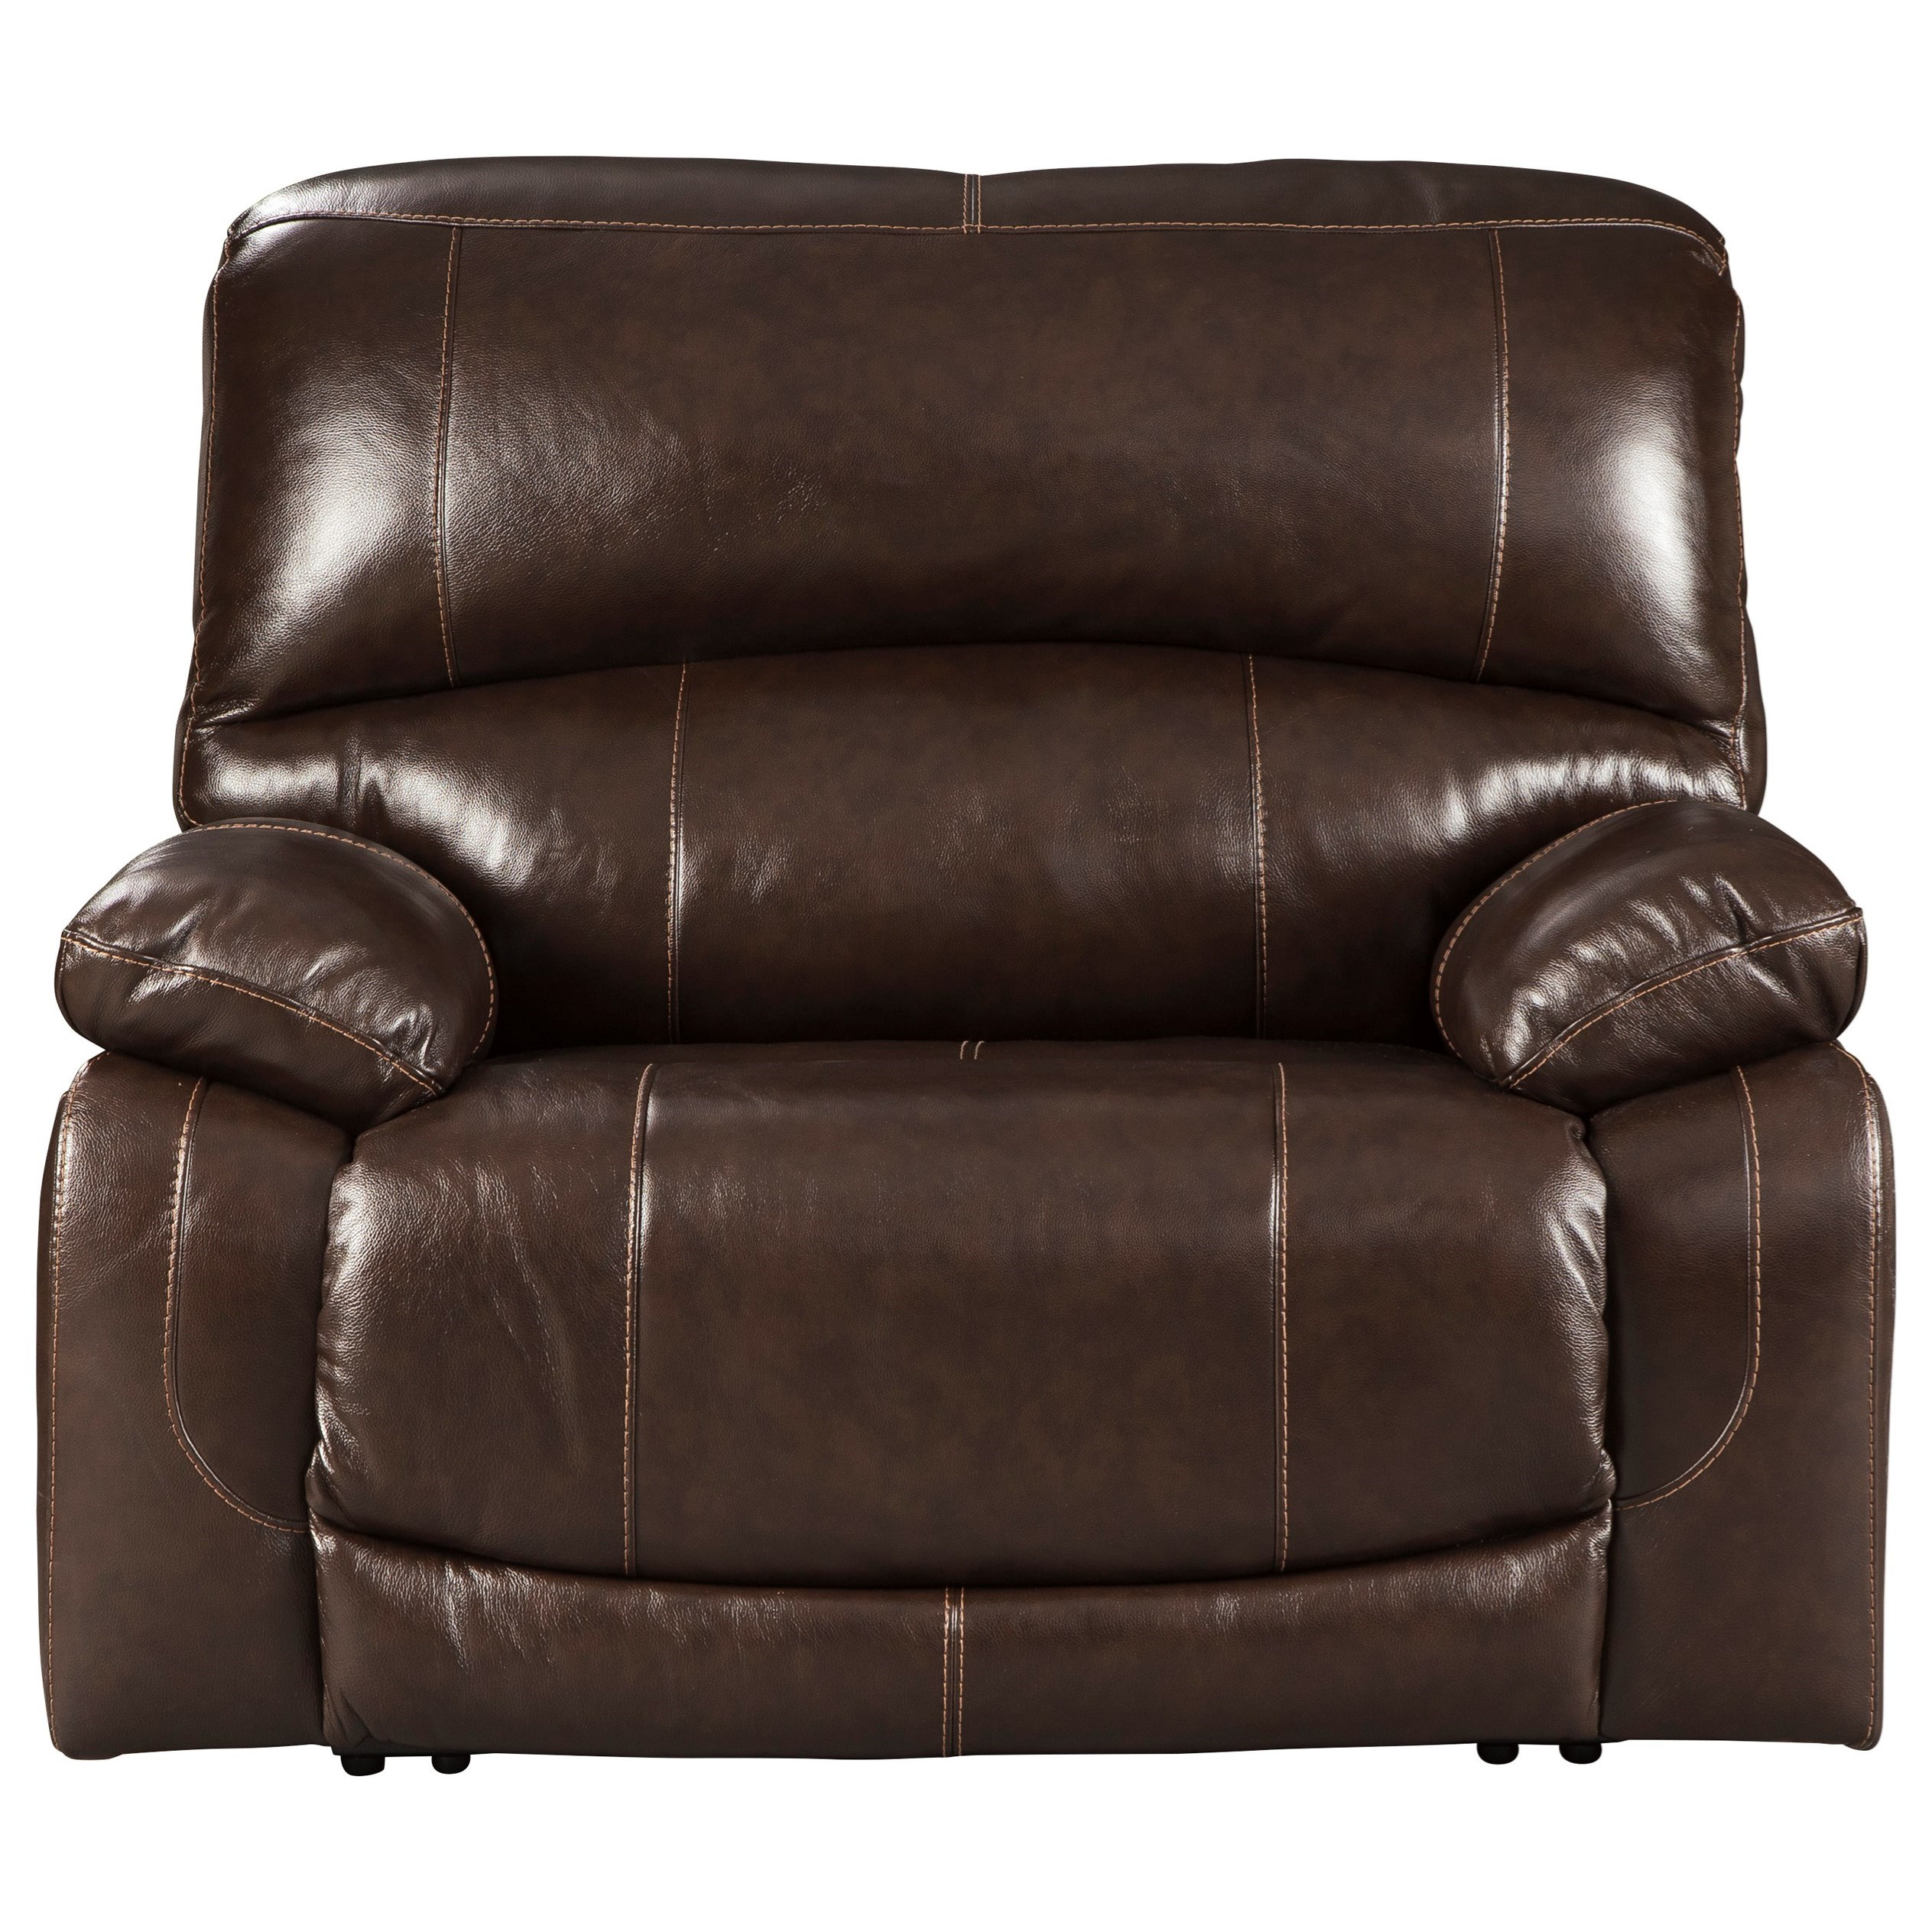 Hallstrung Power Wide Recliner by Signature Design by Ashley at Beds N Stuff